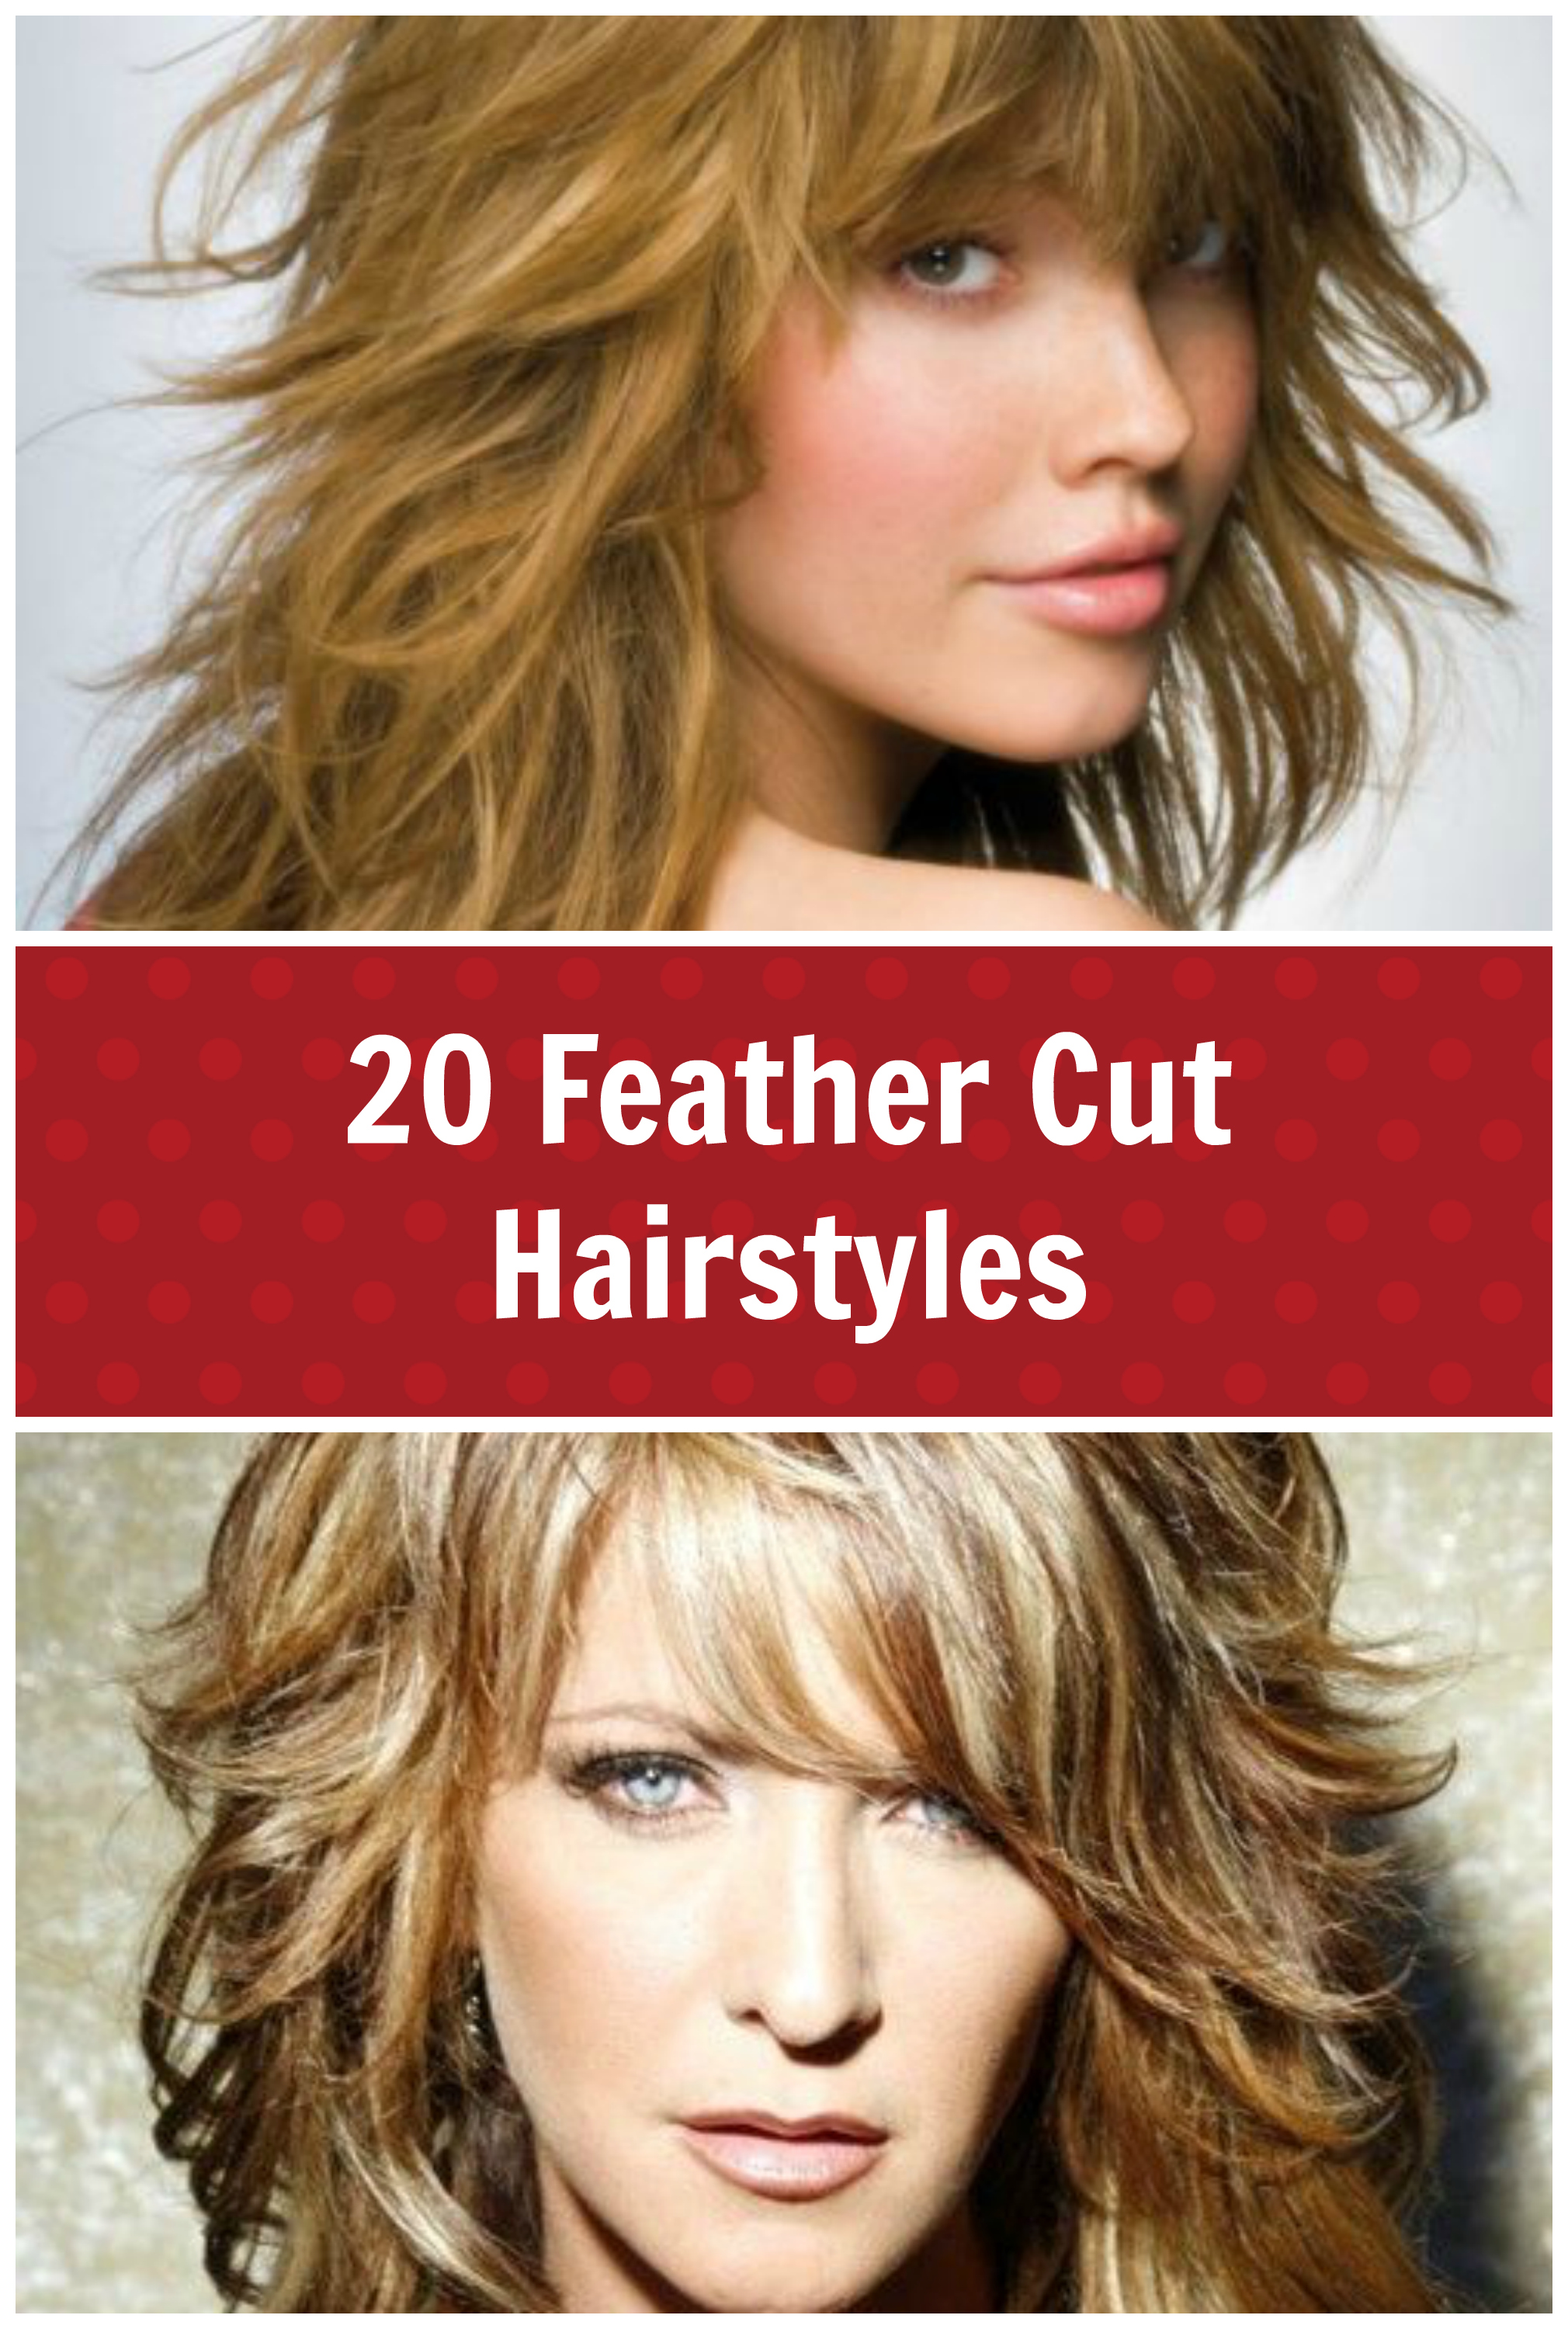 20 Feather Cut Hairstyles For Long, Medium, and Short Hair - Di ...